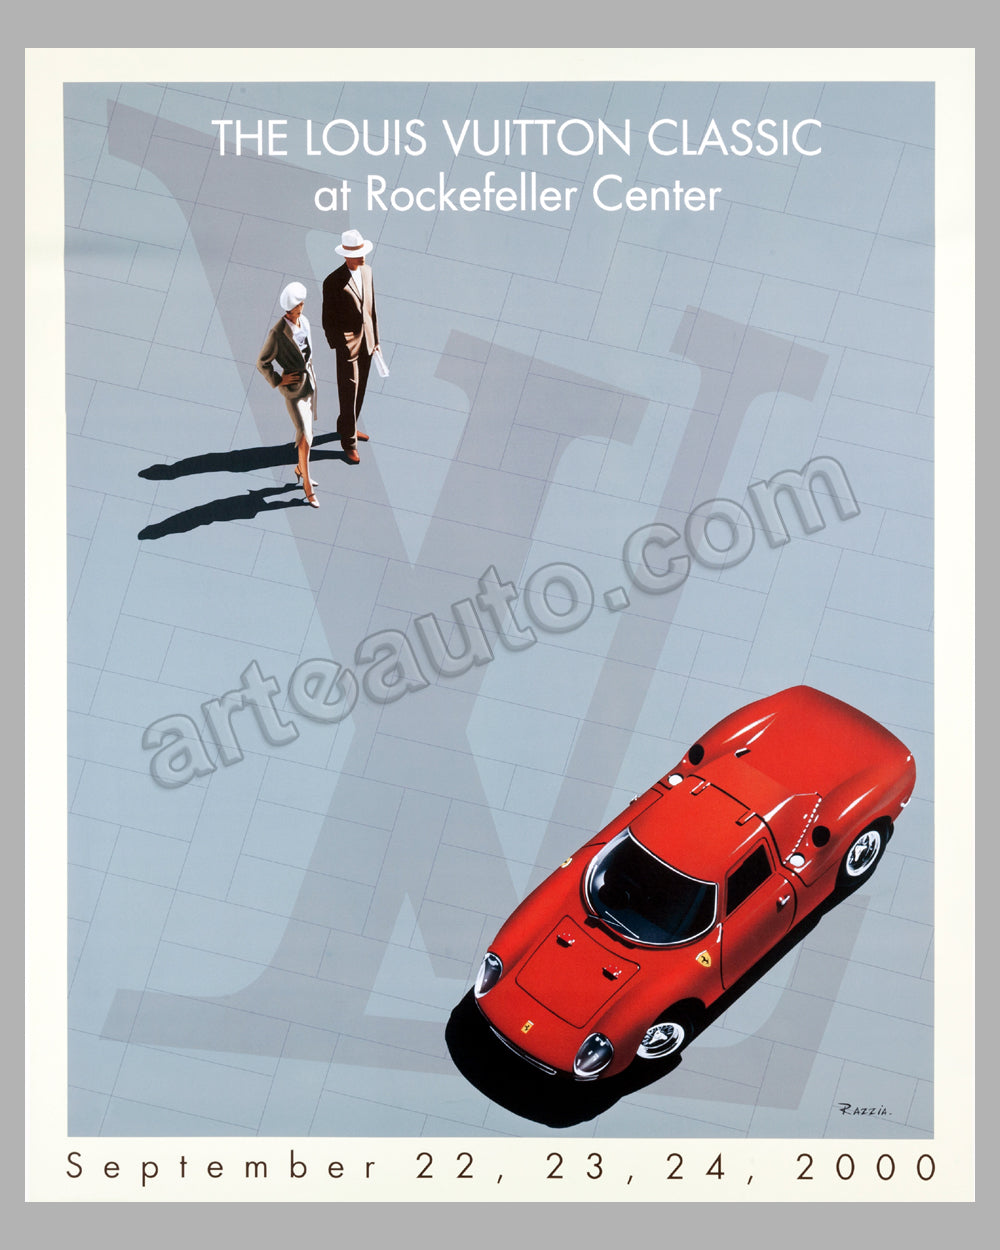 Louis Vuitton Classic at Rockefeller Center 2000 large poster by Razzia